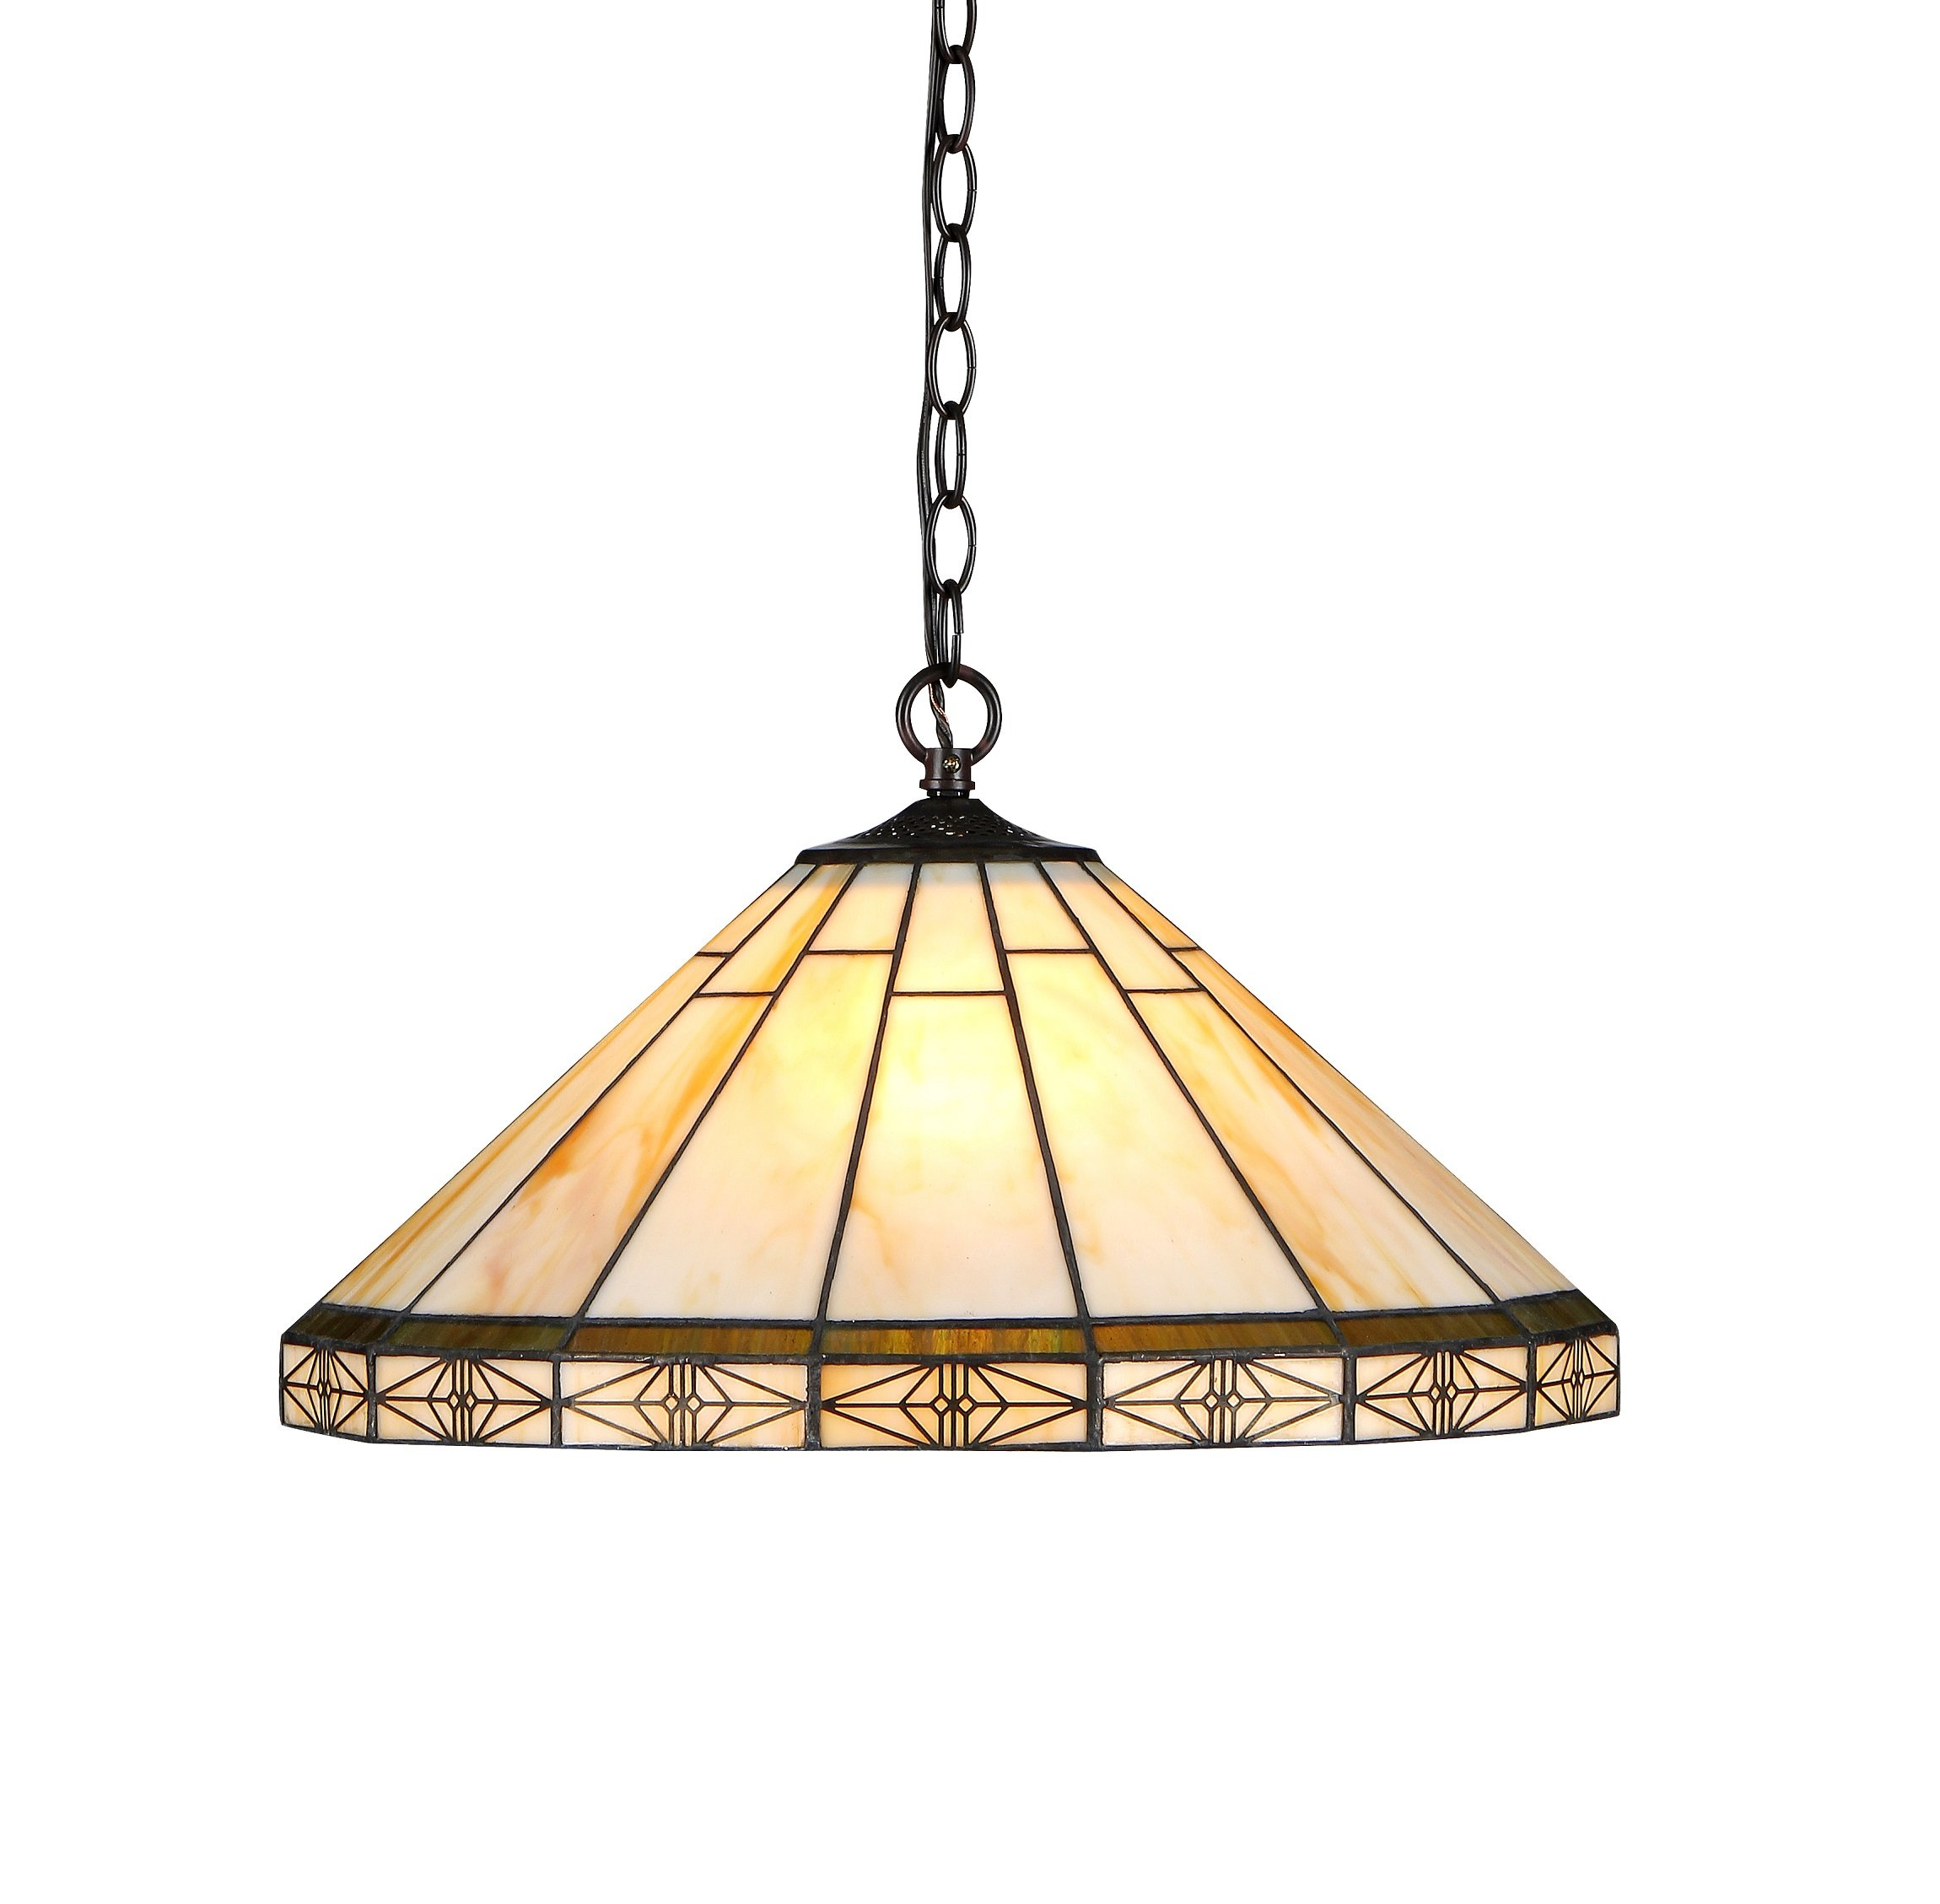 Chloe Lighting CH31315MI18-DH2 Belle Tiffany-Style Mission 2-Light Ceiling Pendant with 18-Inch Shade